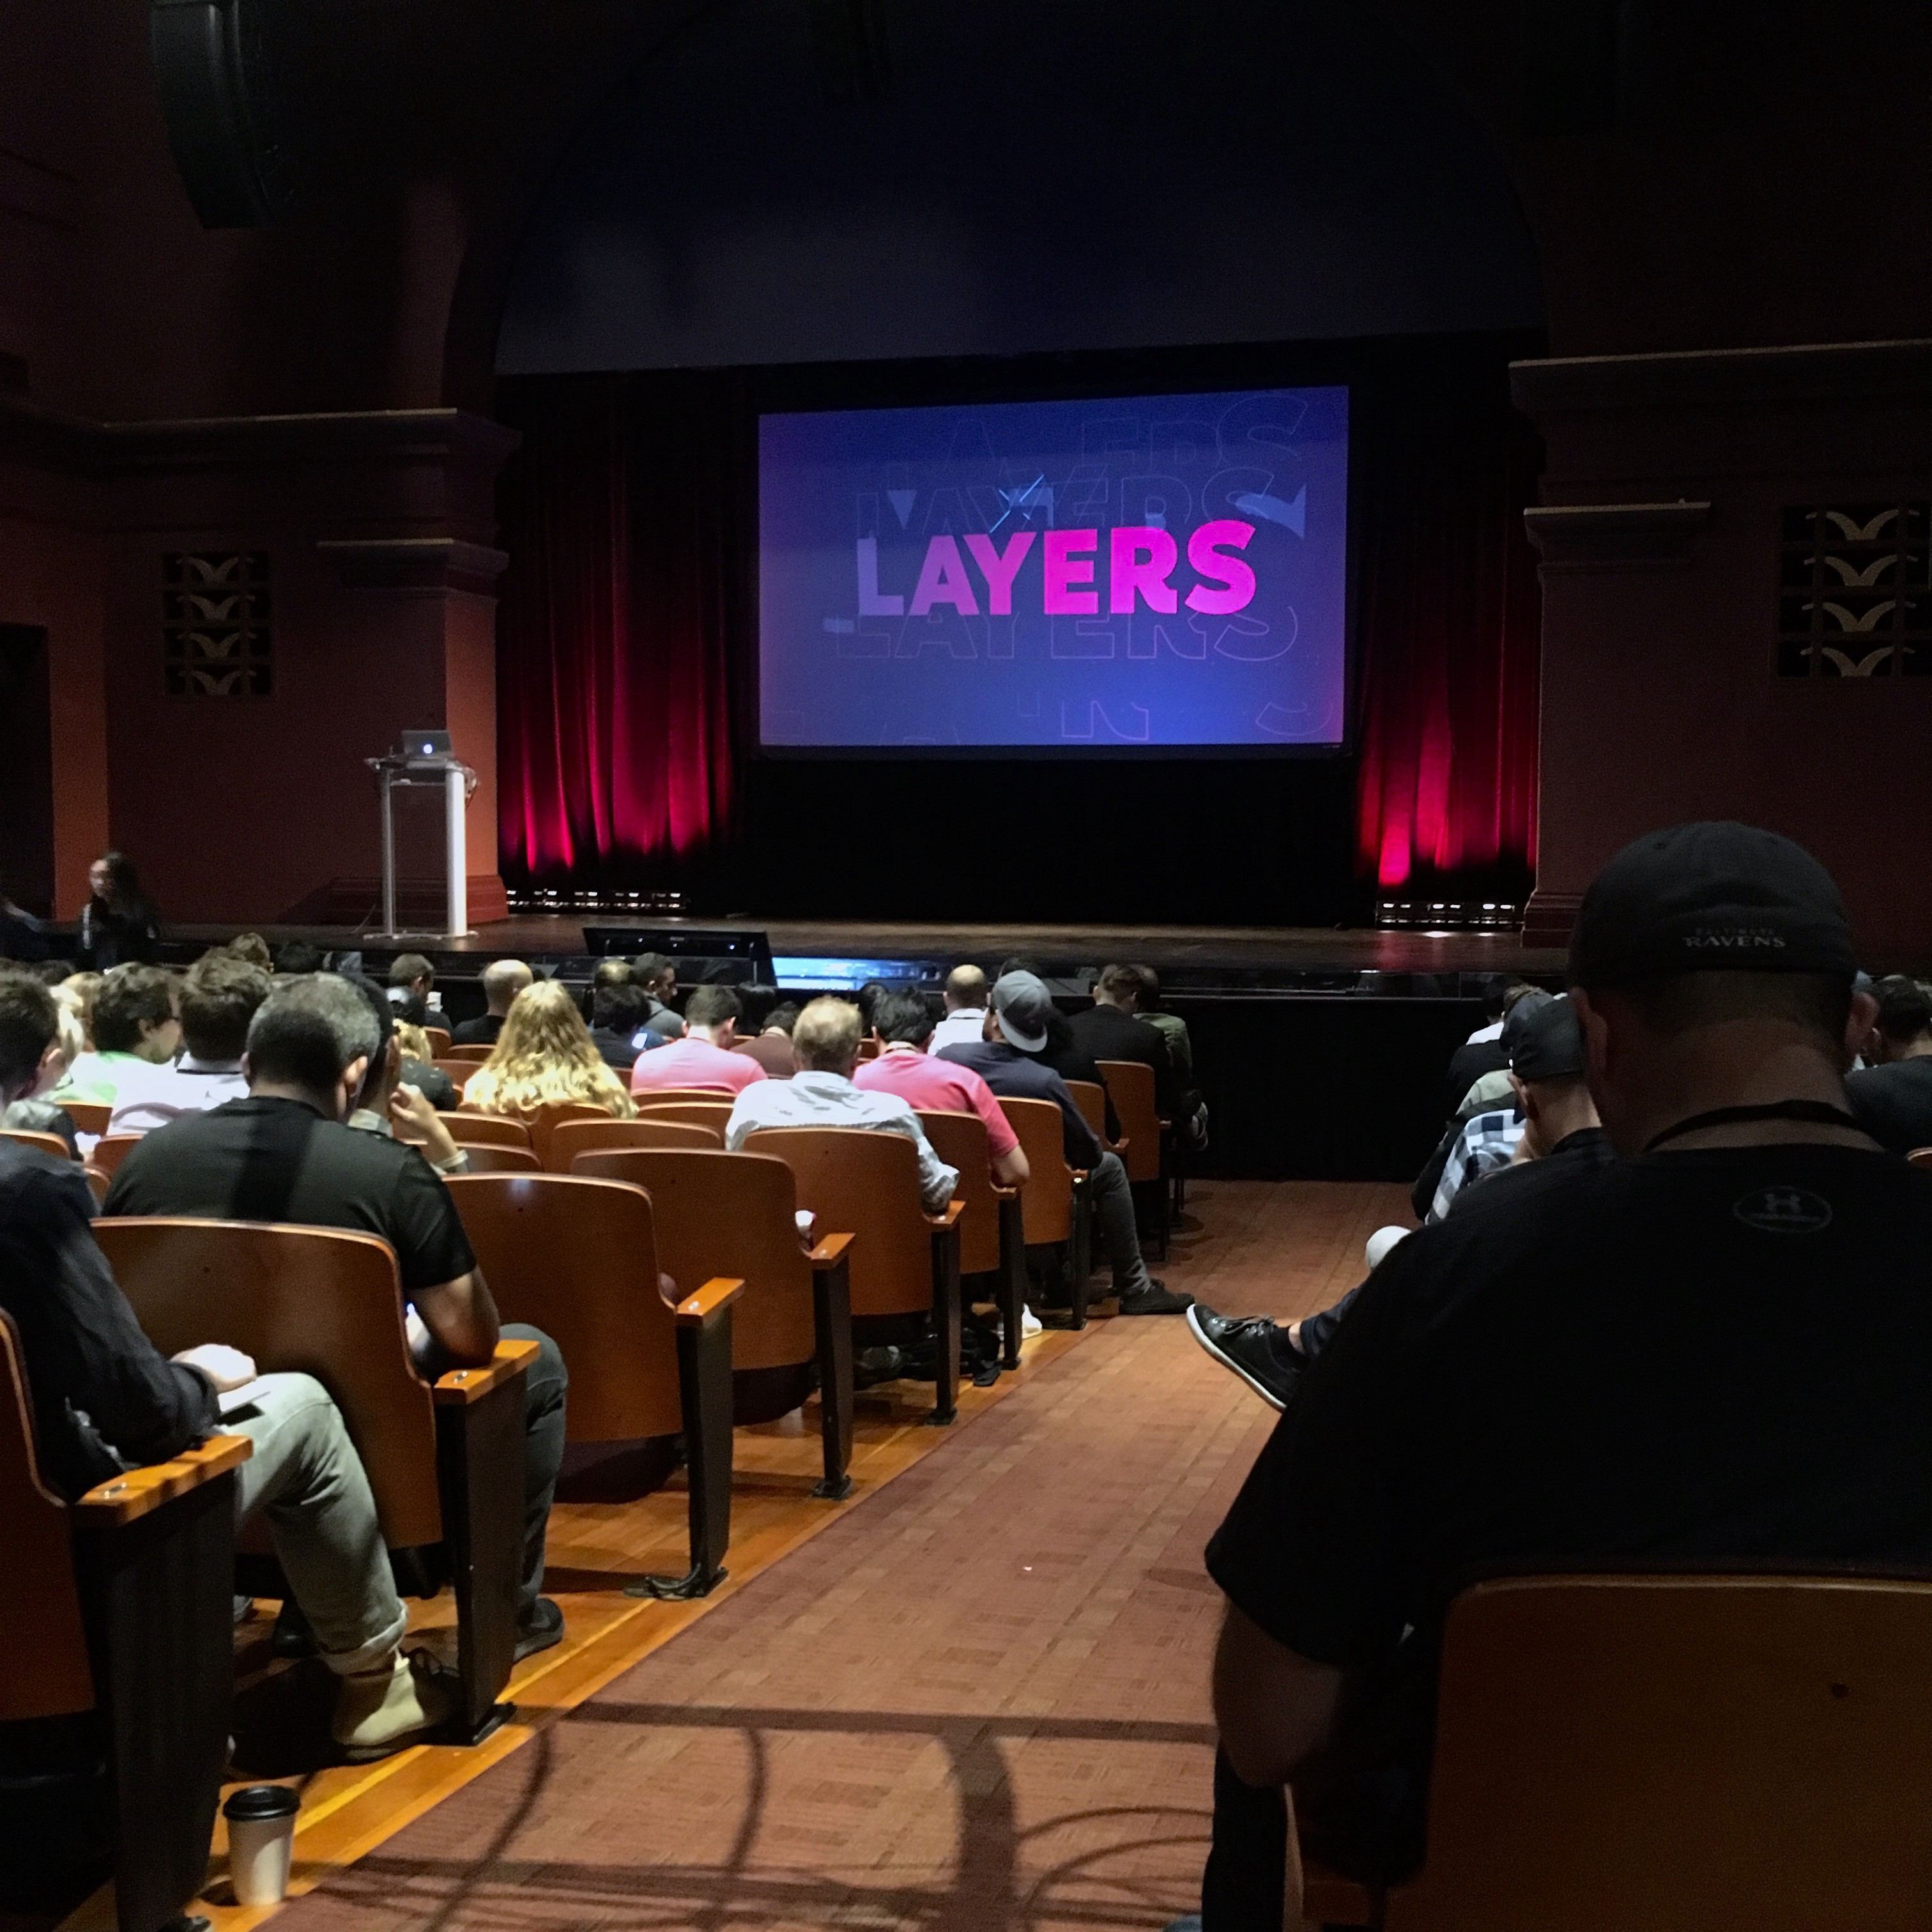 A photo of the Layers auditorium from 2018.